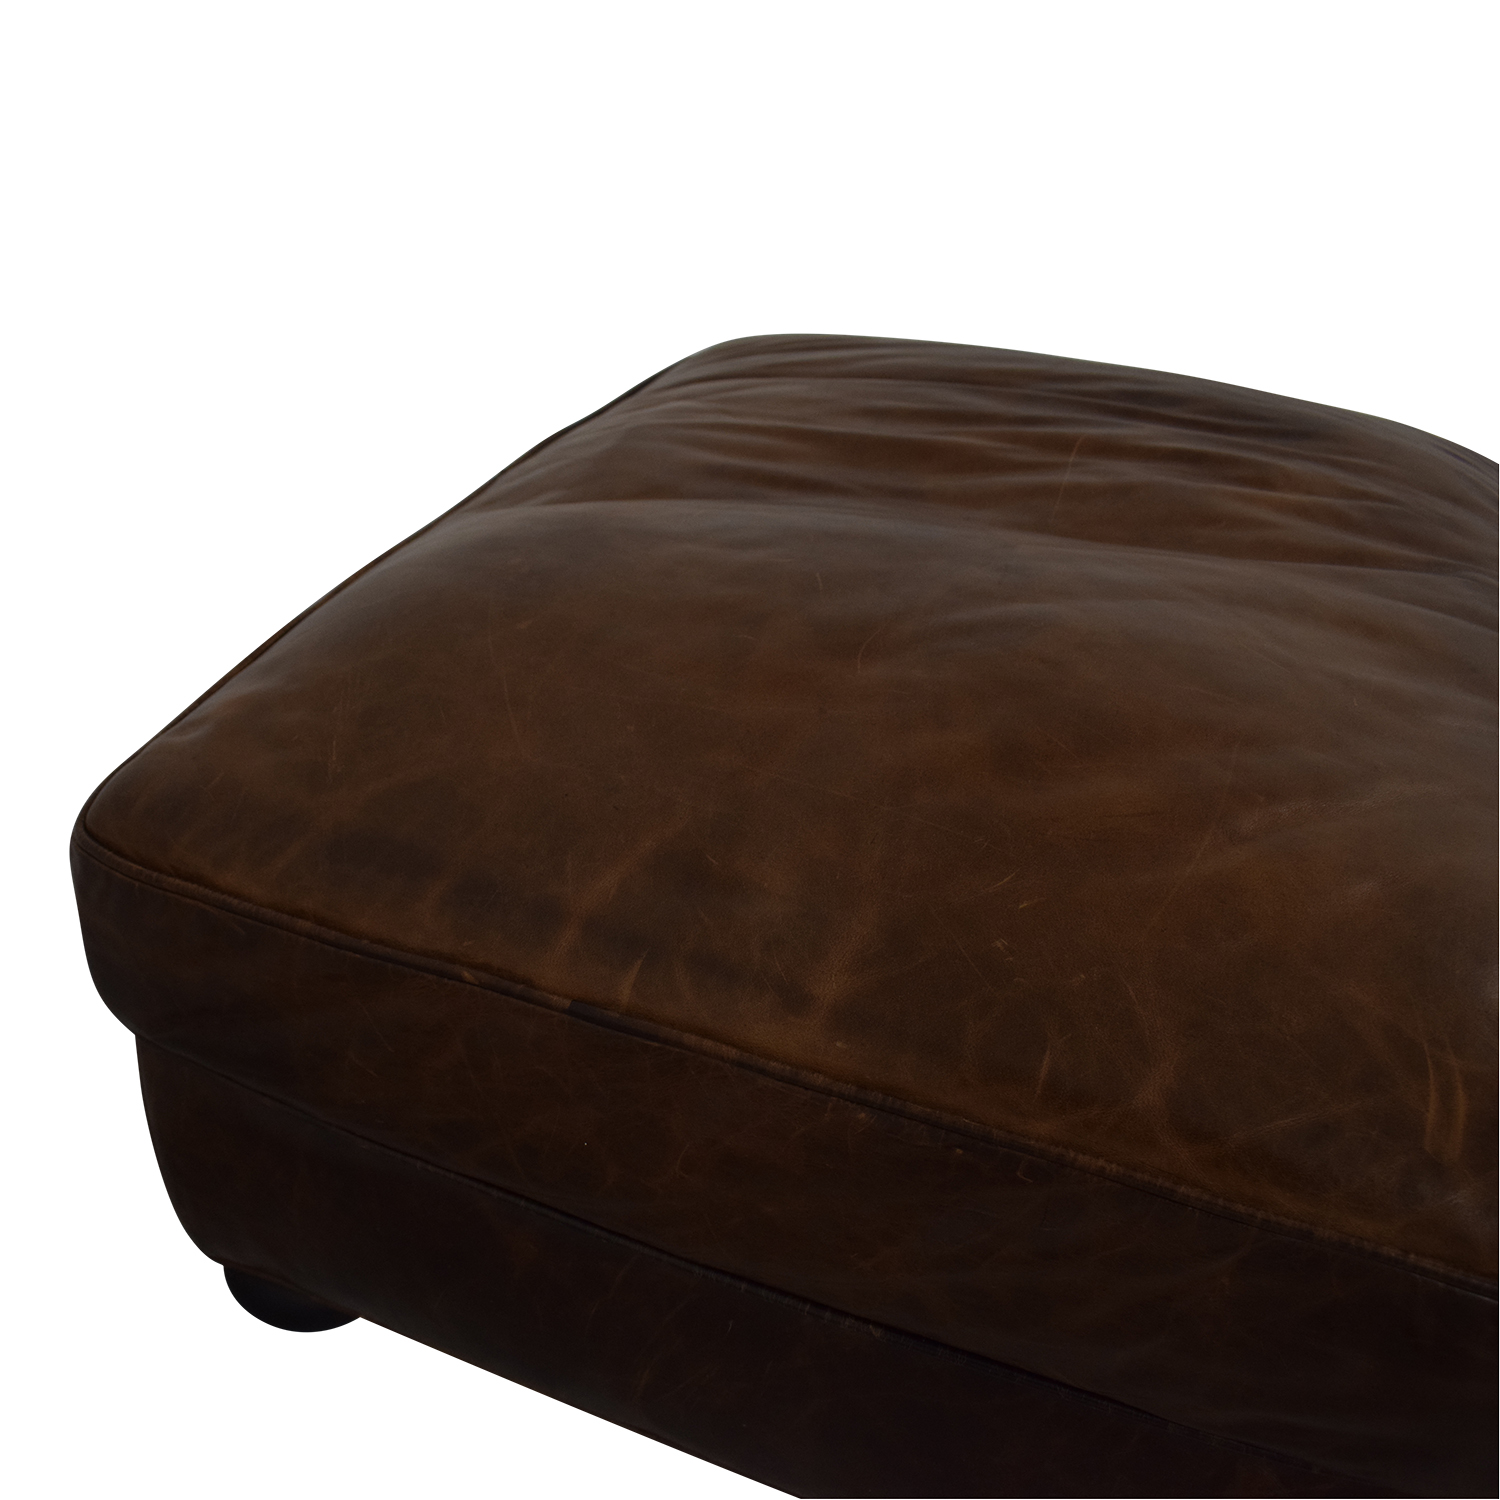 Restoration Hardware Restoration Hardware Lancaster Leather Ottoman nyc